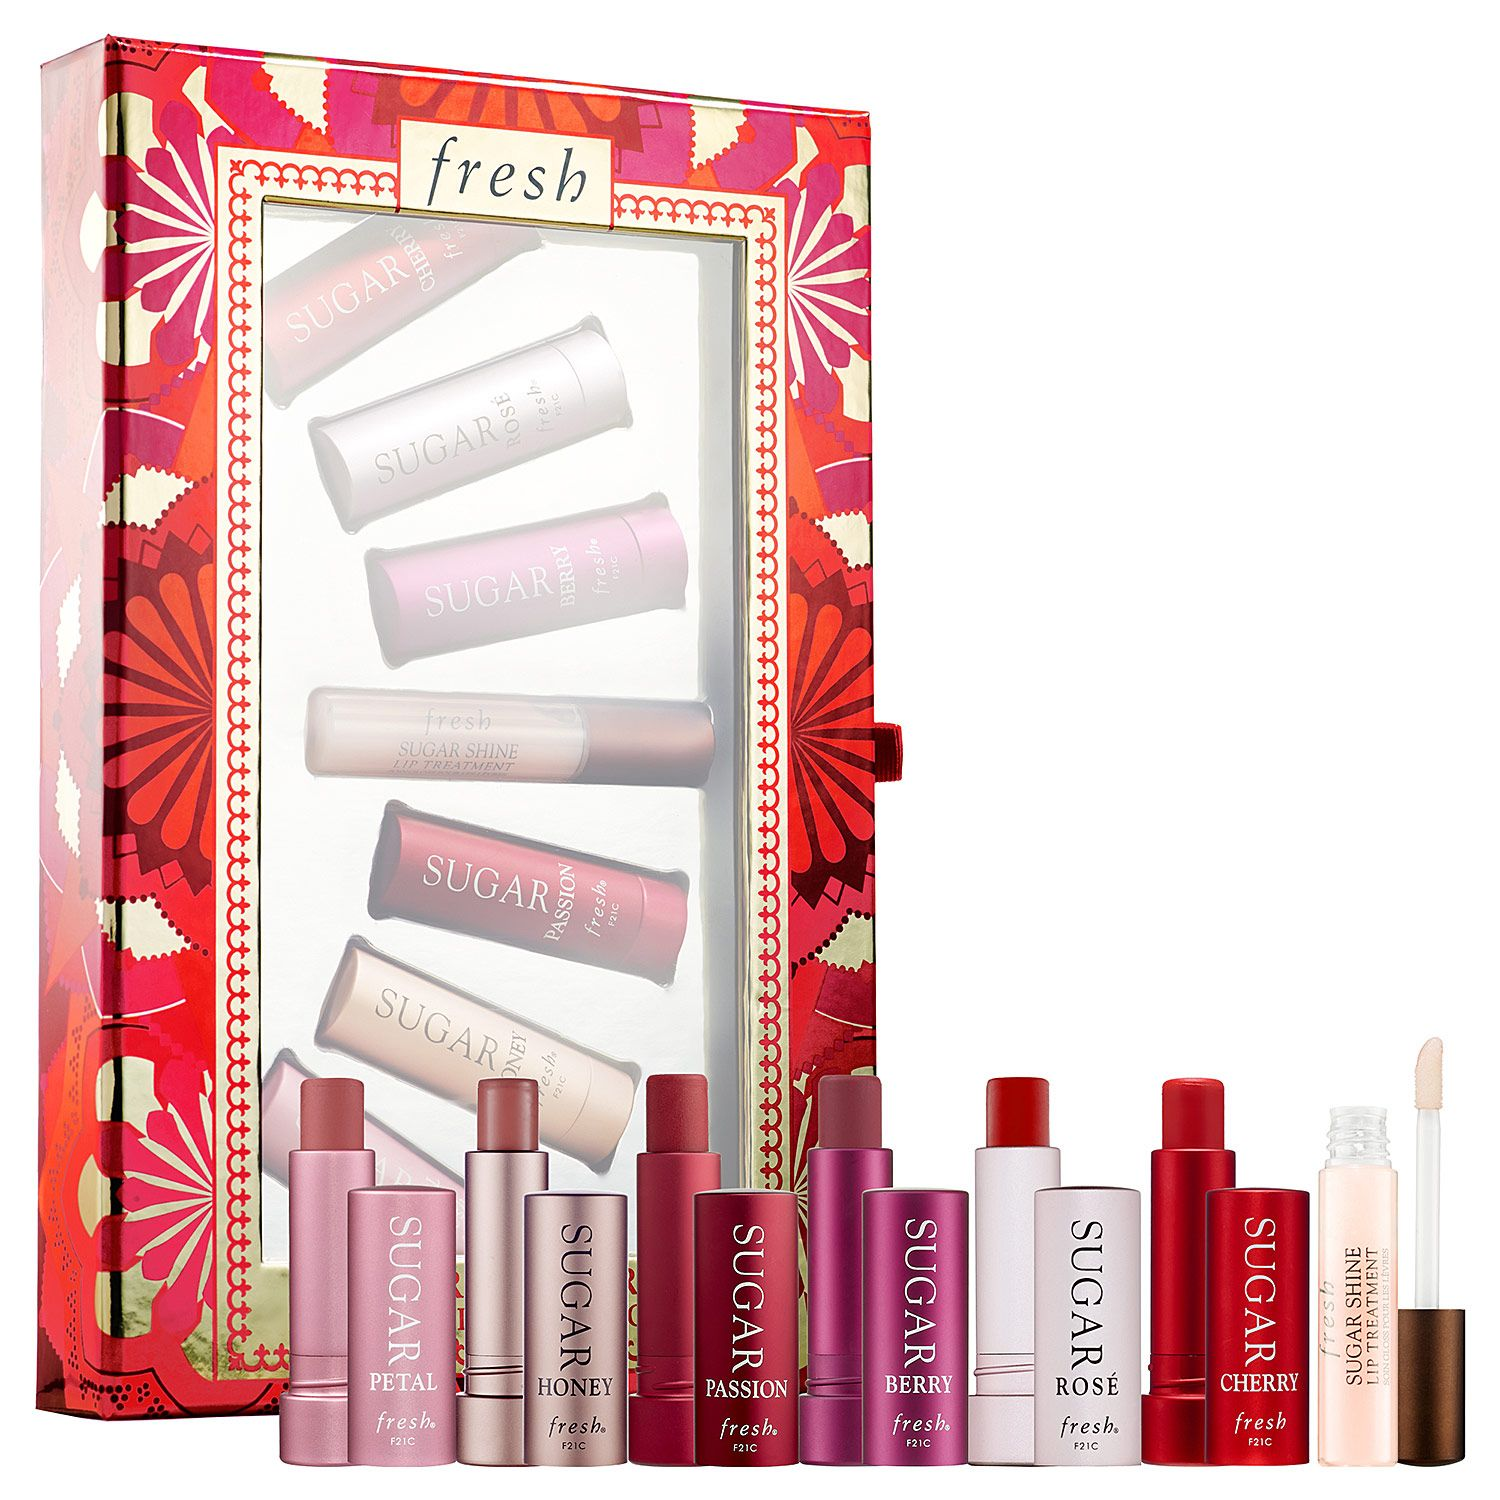 Fresh Sugar Treasures Sephora gifts giftsforher